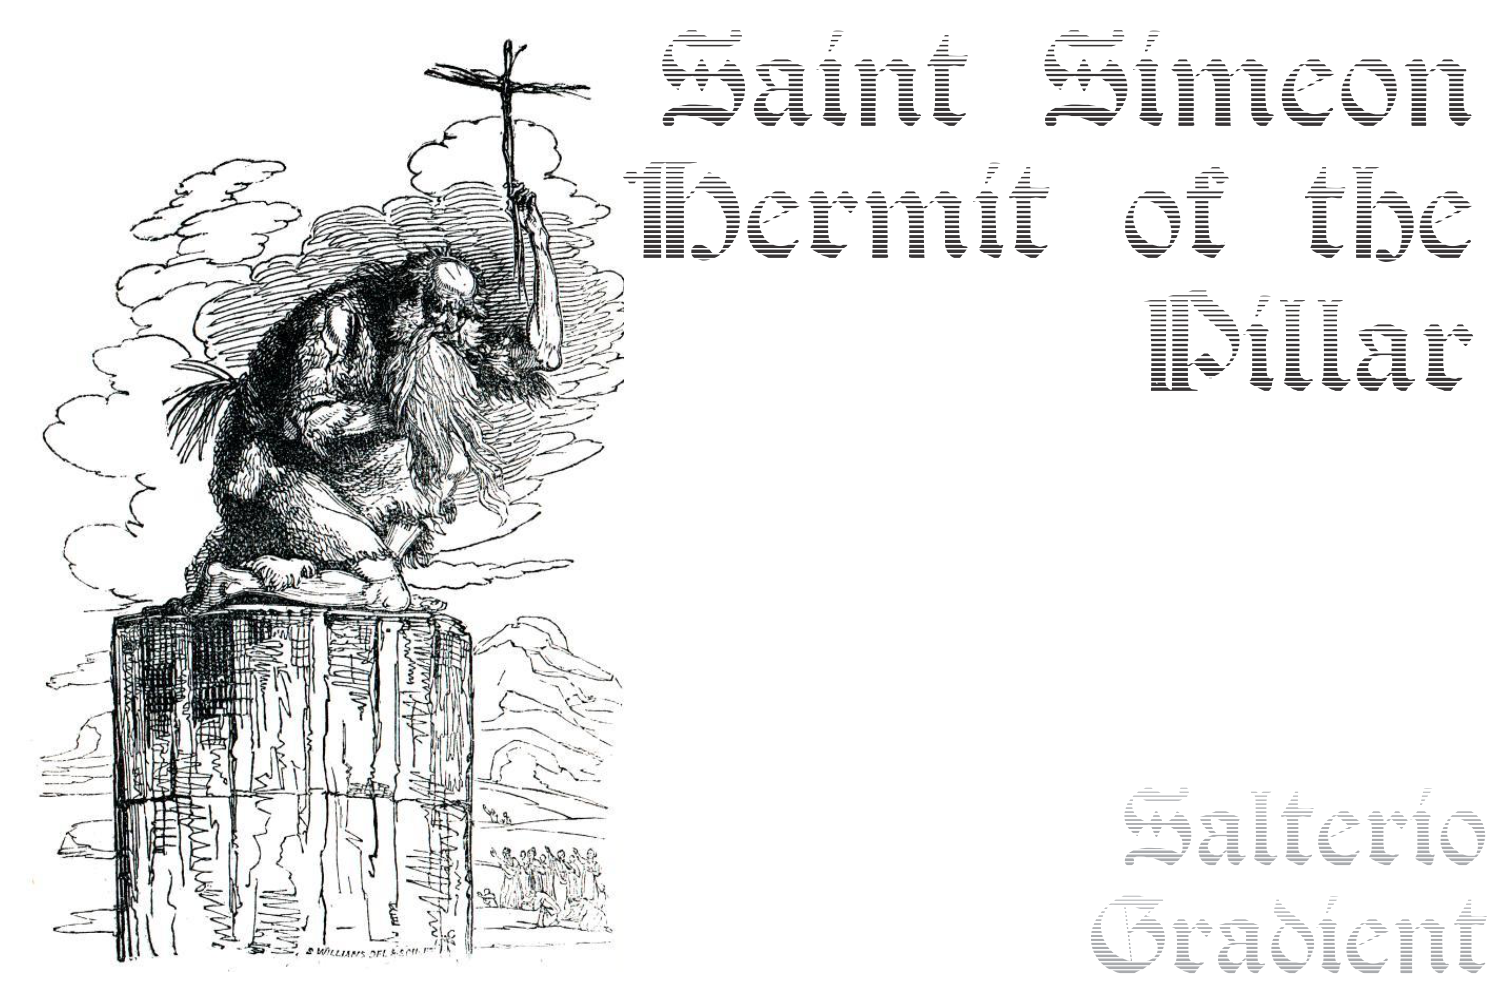 Salterio (six pack fonts) example image 5